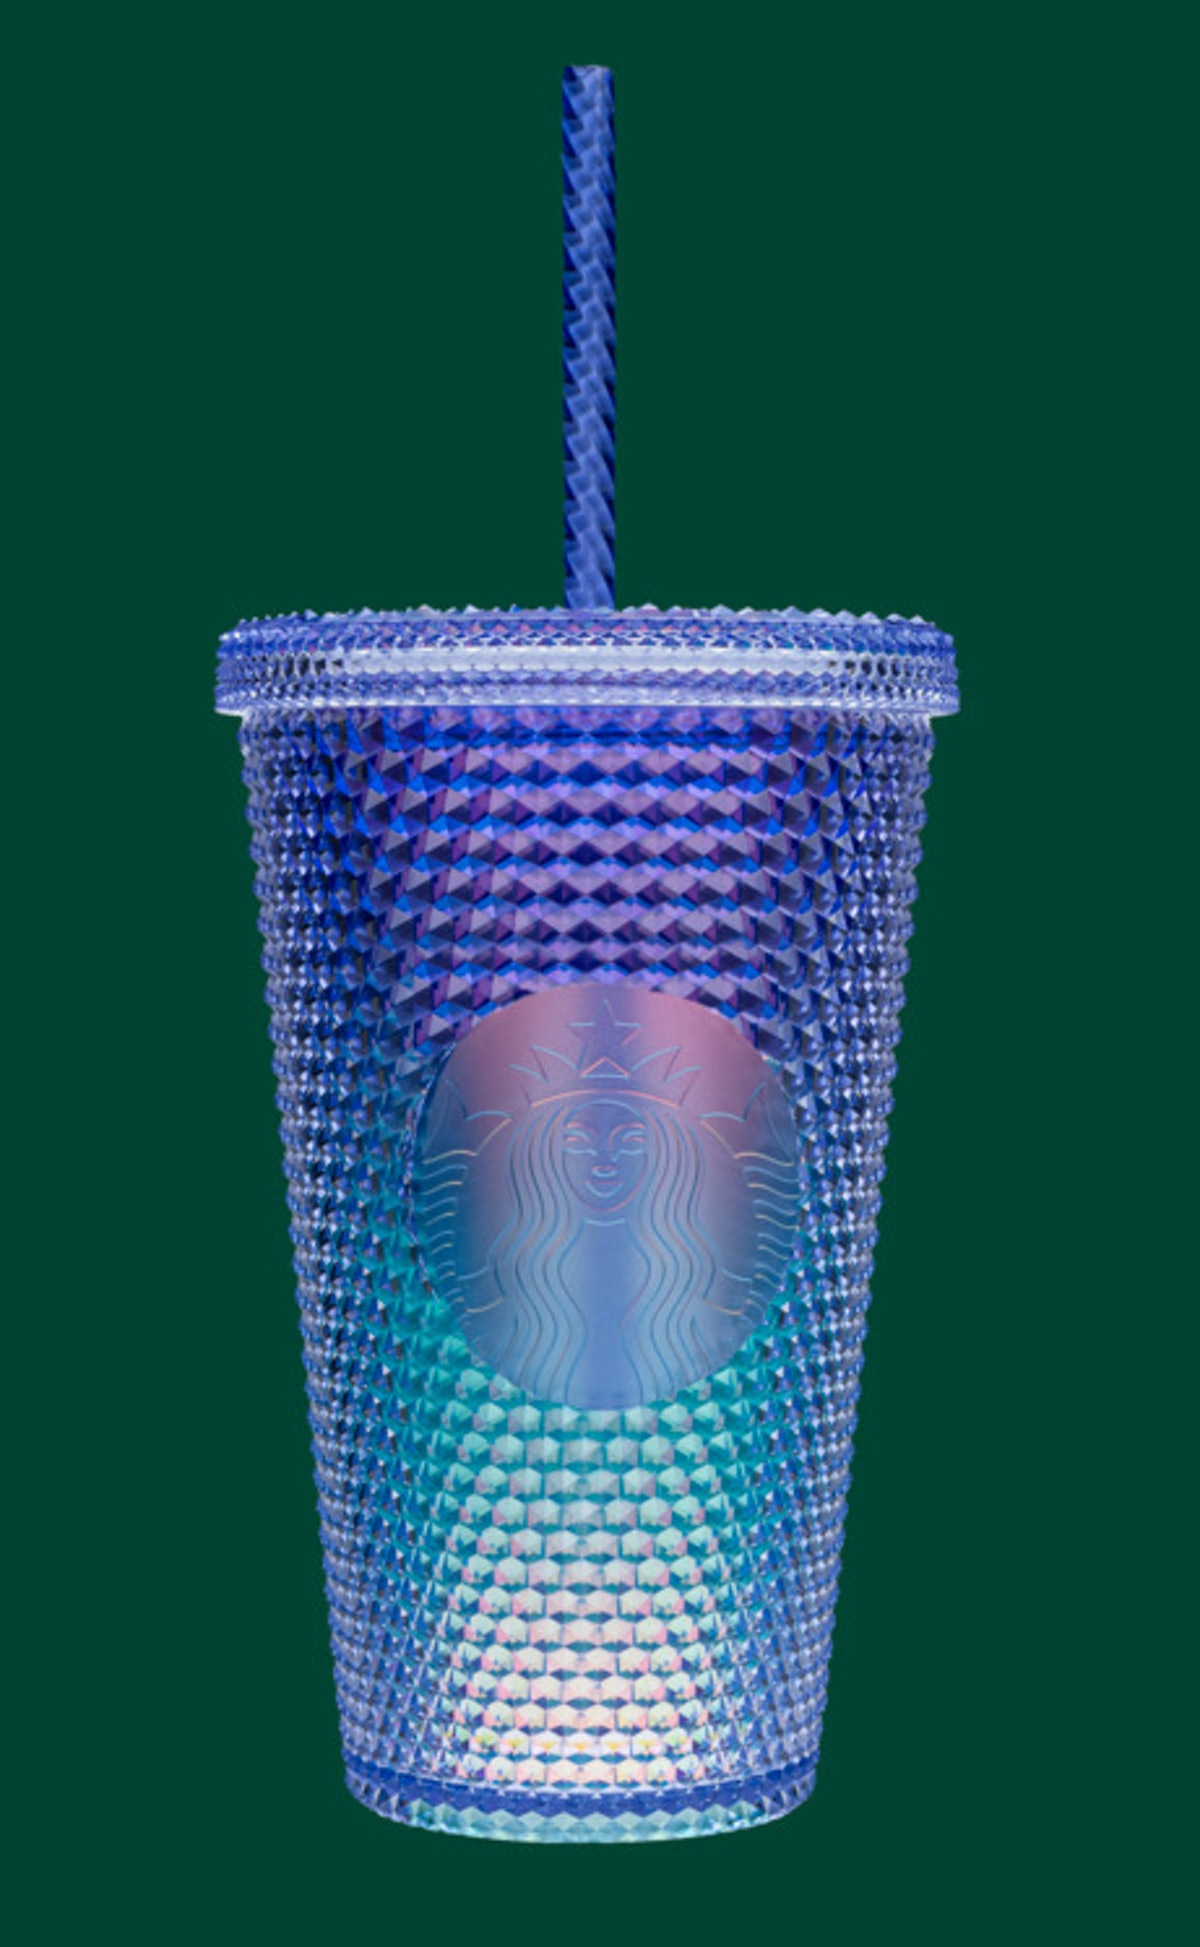 Starbucks launched a new studded cold cup for summer 2021.